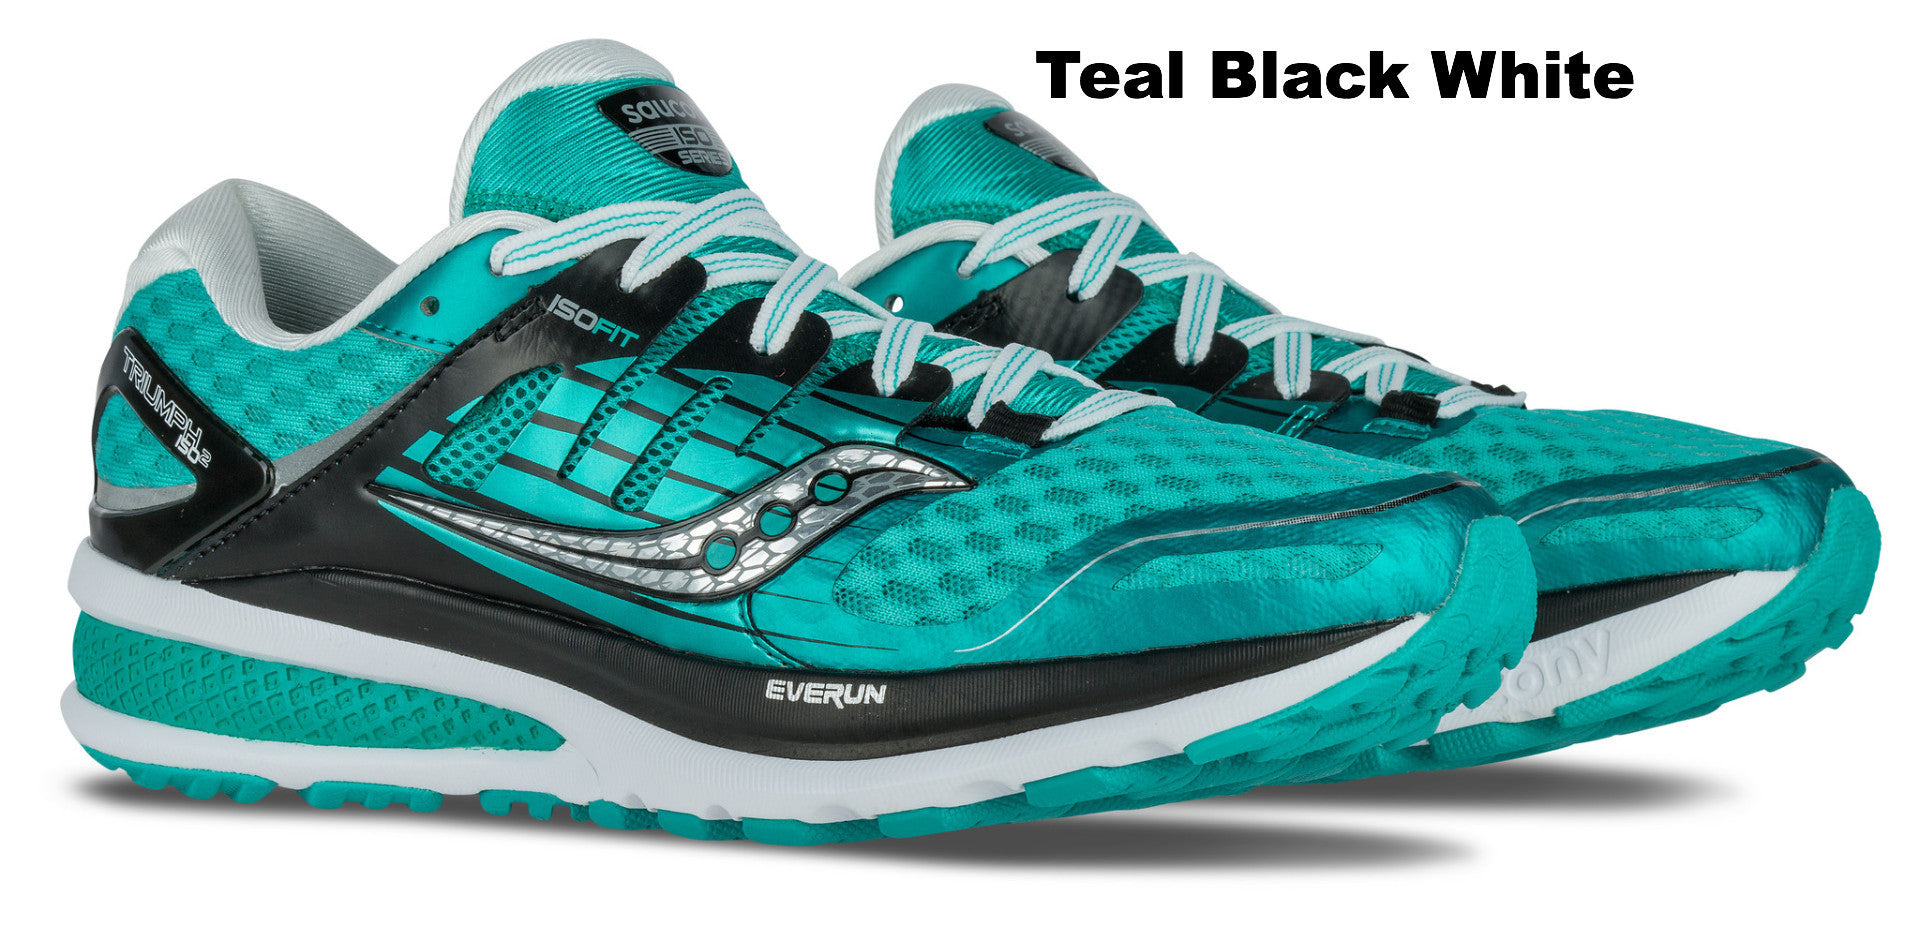 S10290-5 Teal Black White